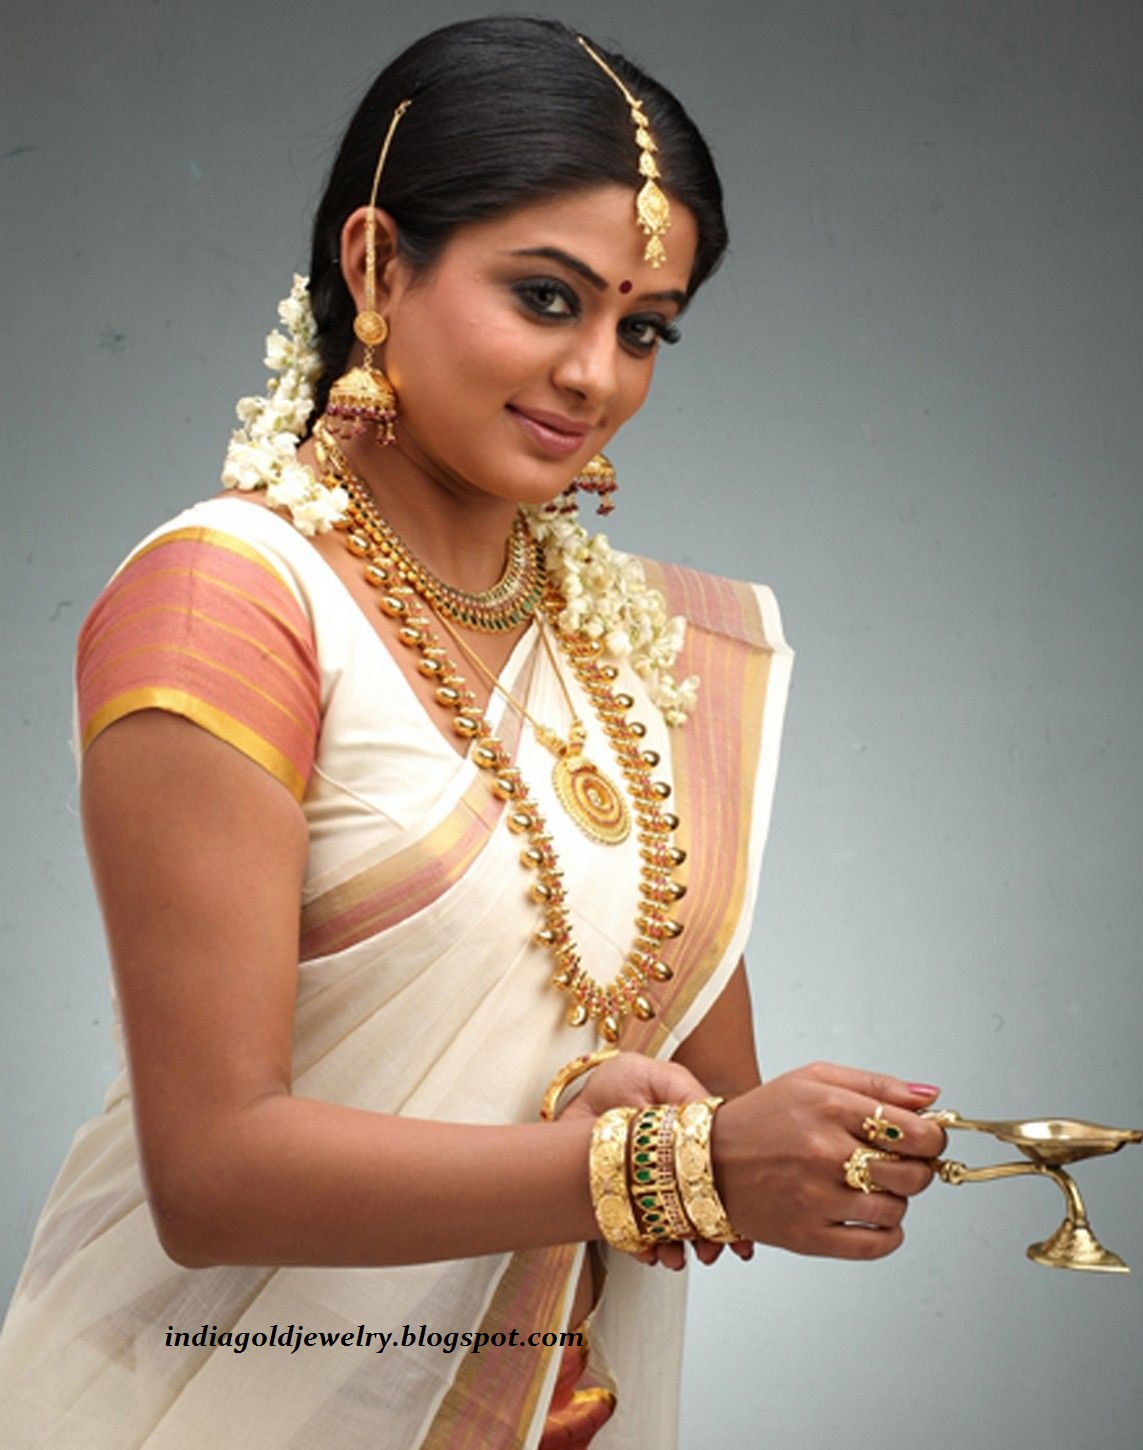 Indian Gold and Diamond Jewellery: Priyamani with kerala Bridal ...